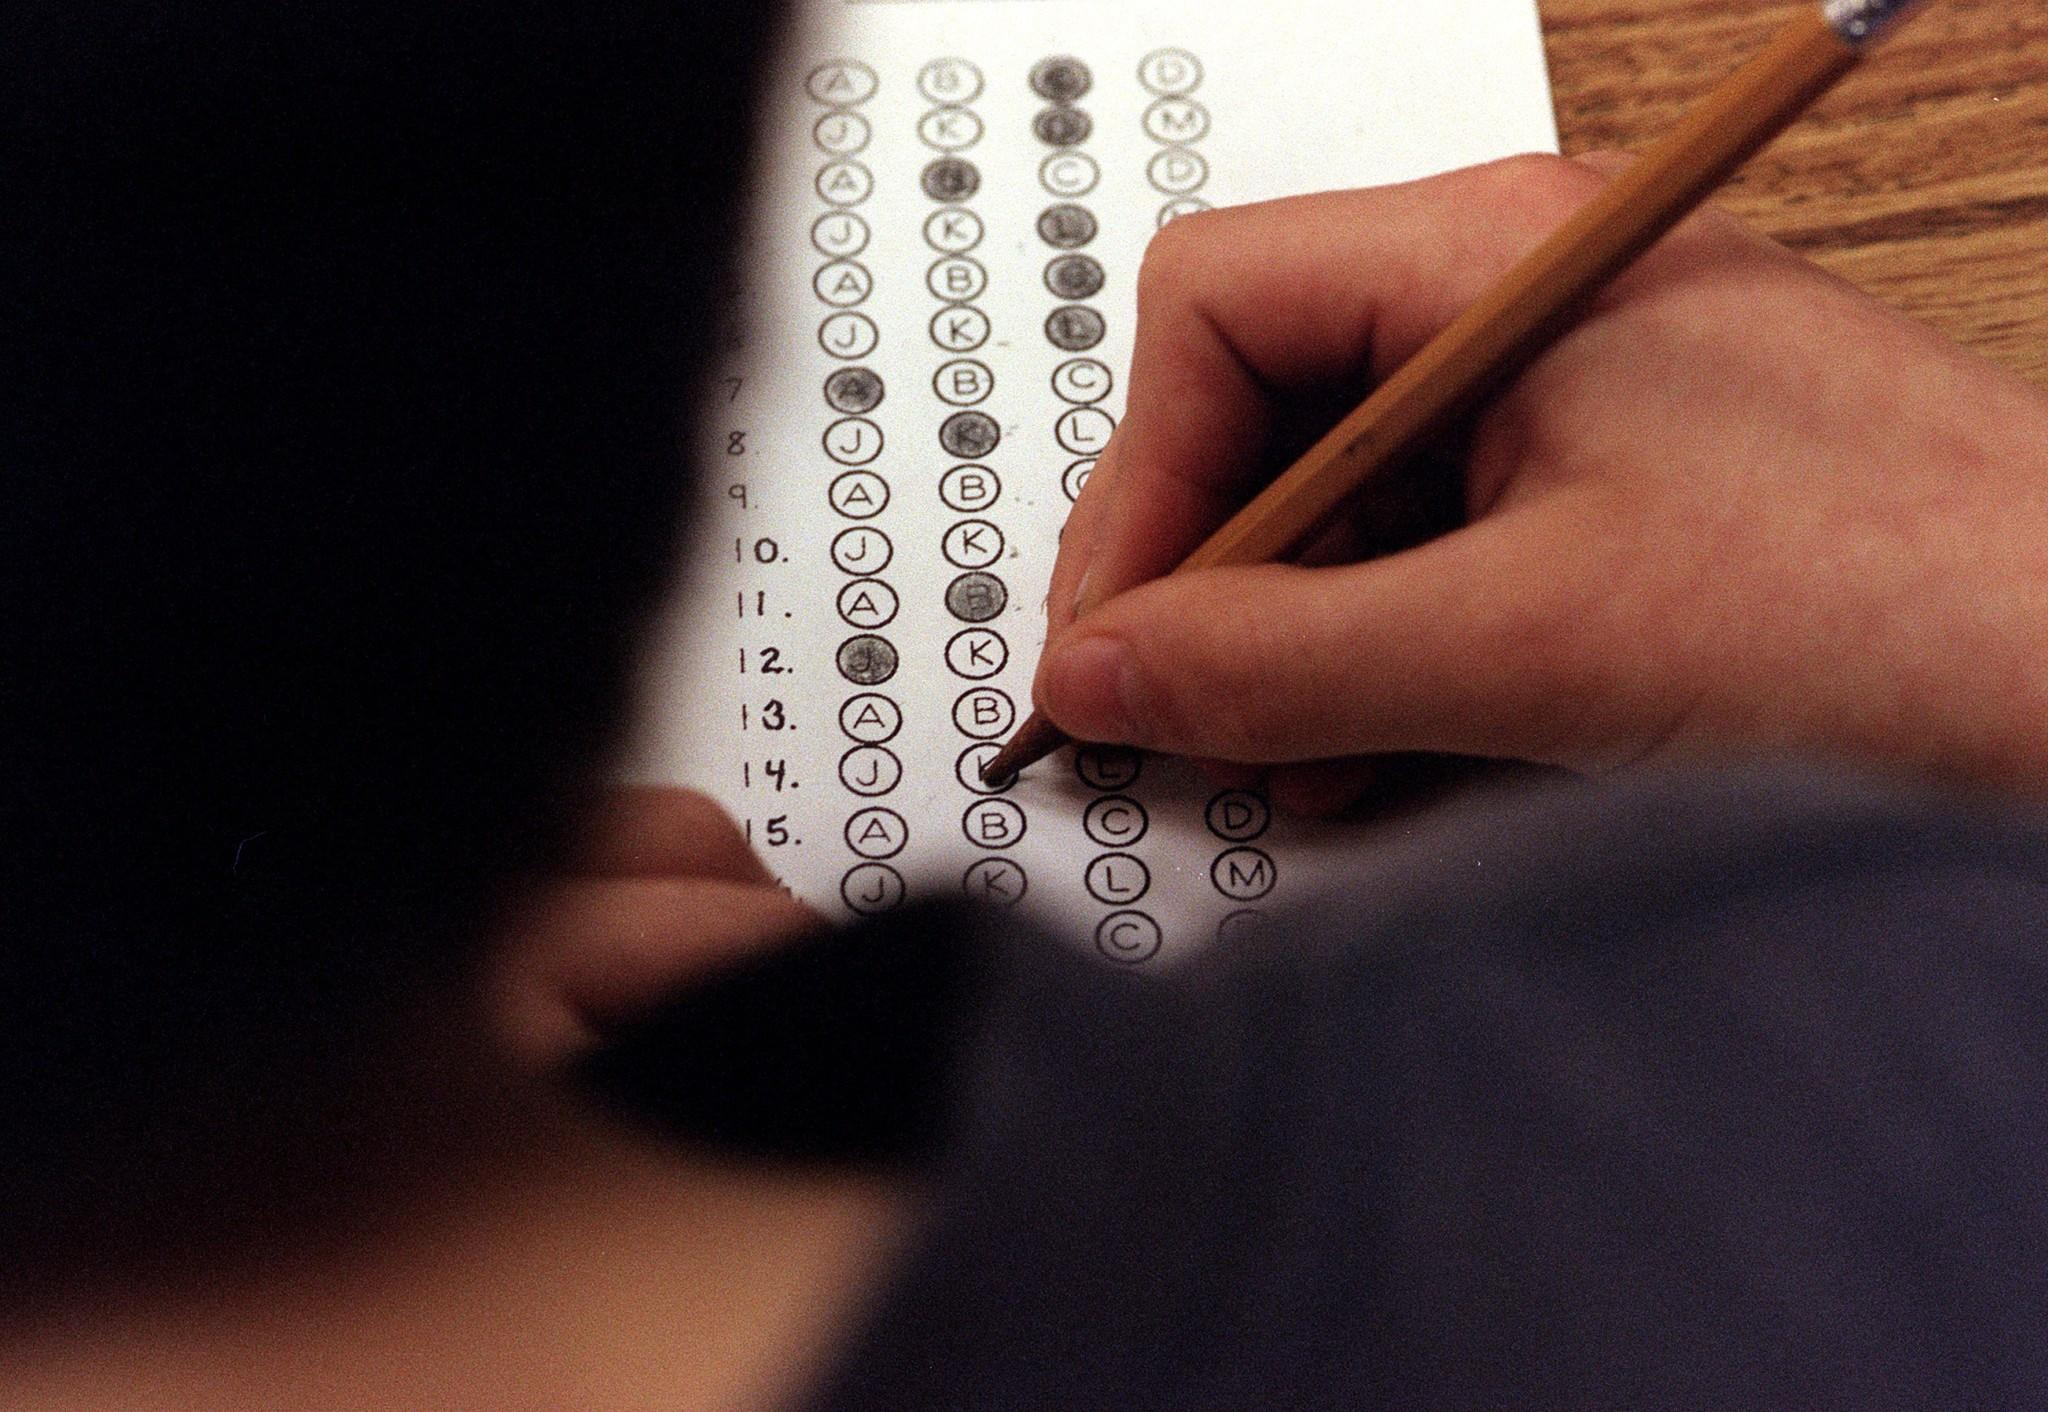 File photo: Student filling in answers on a standardized test. New research suggests high school grades are a better predictor for college success than SAT scores.